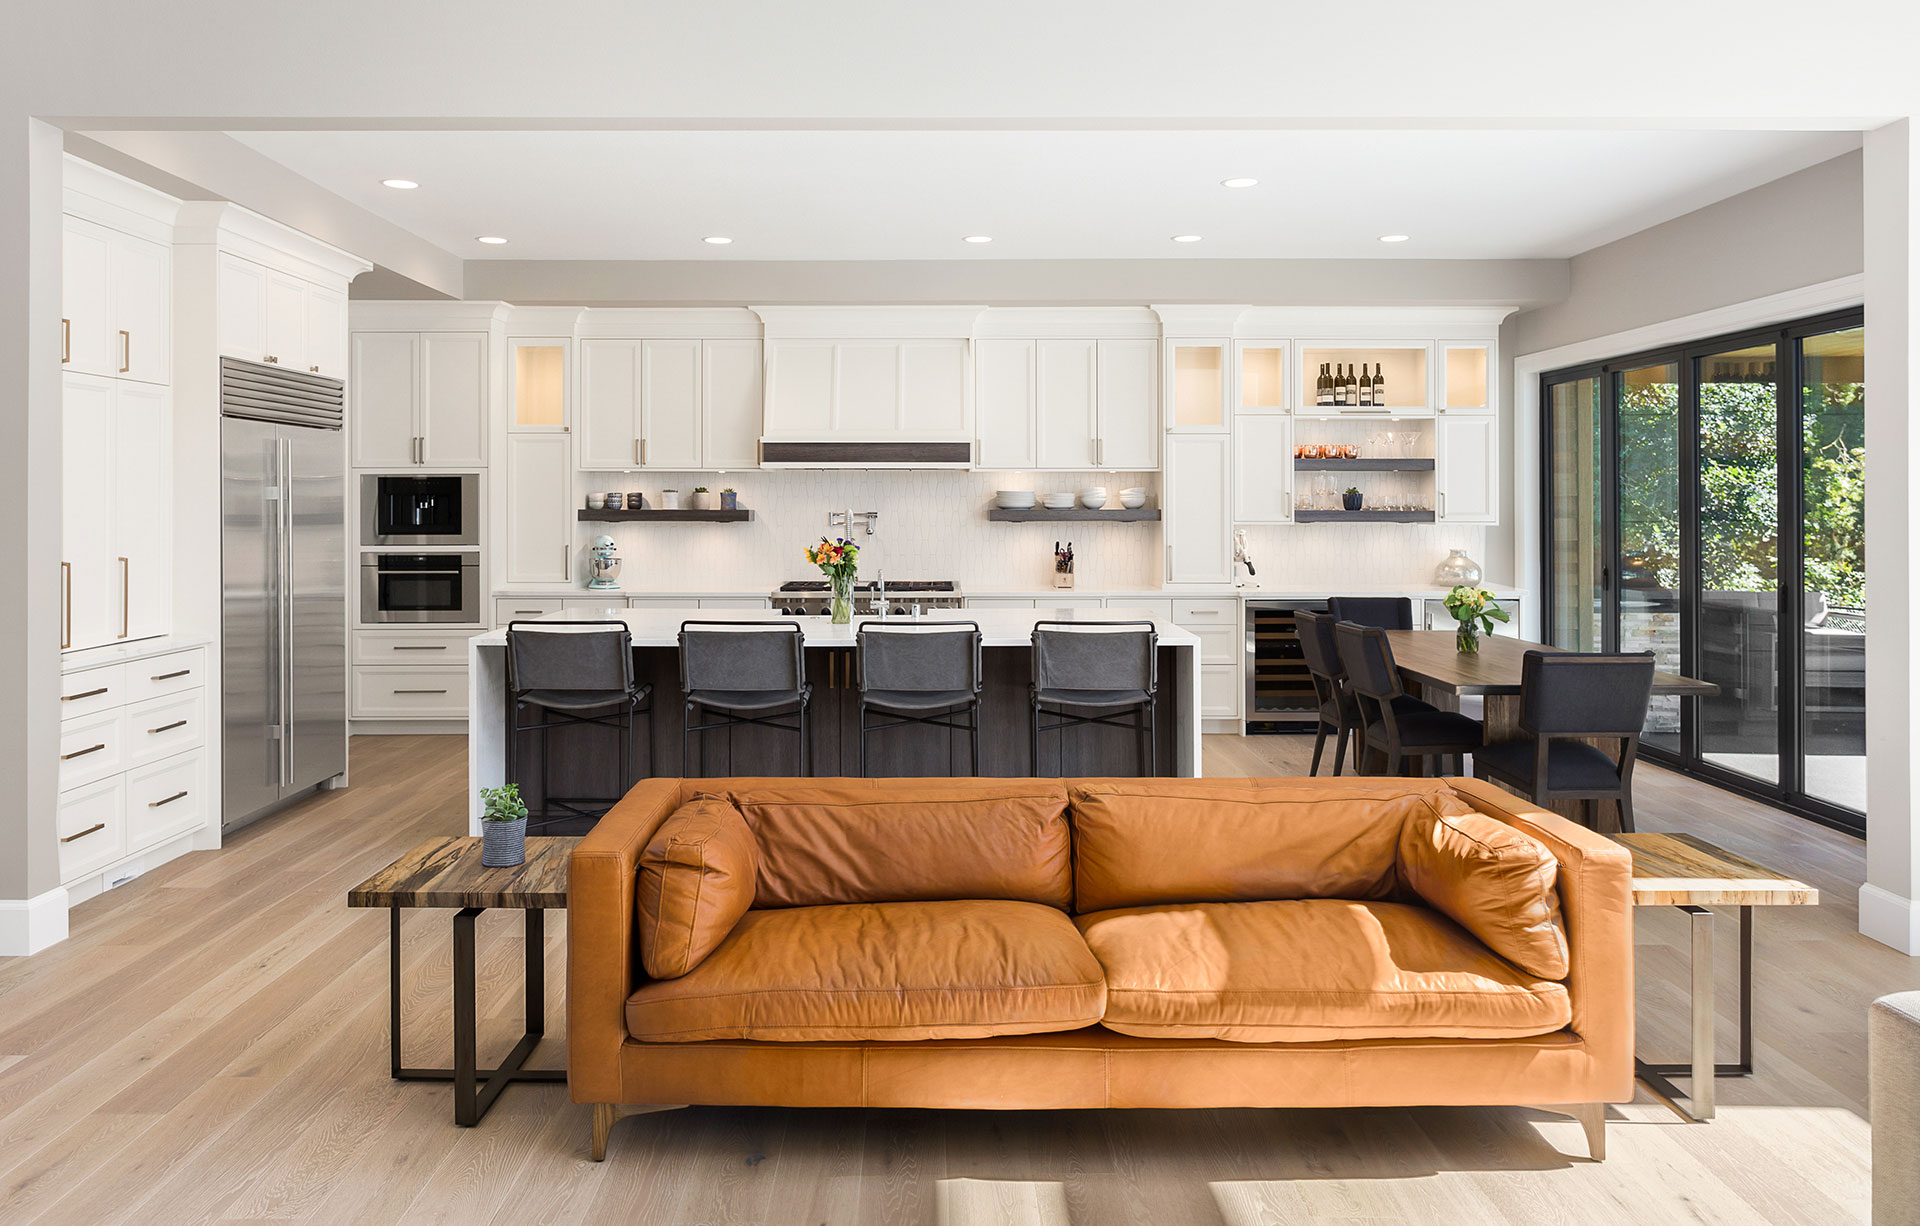 Riverbirch Remodeling Specializes in Home Additions